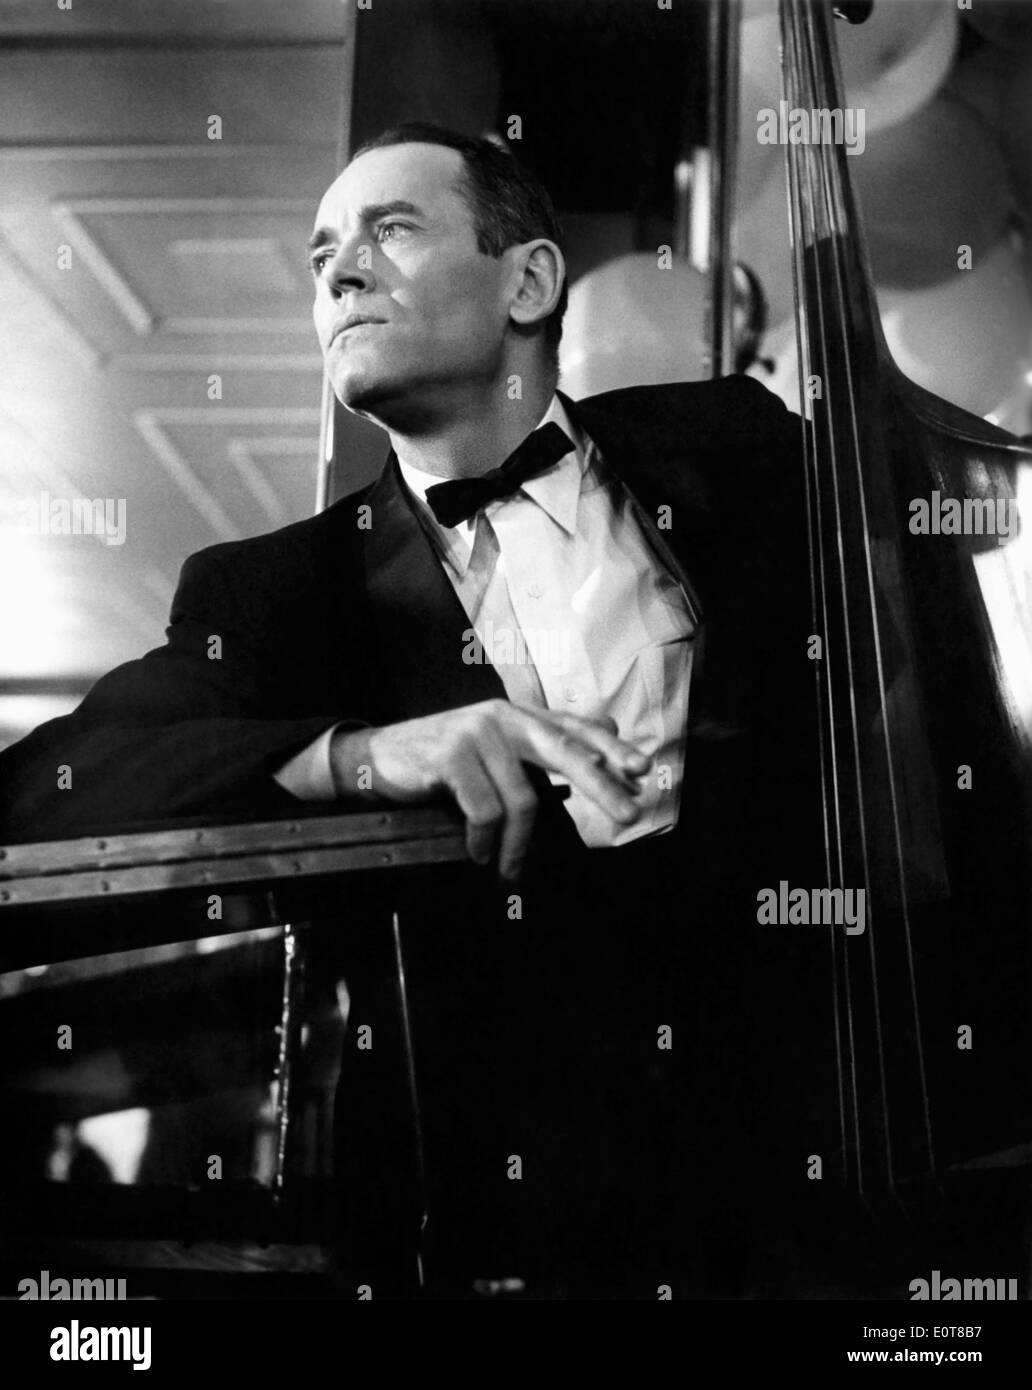 Henry Fonda, on-set of the Film, 'The Wrong Man', 1956 - Stock Image